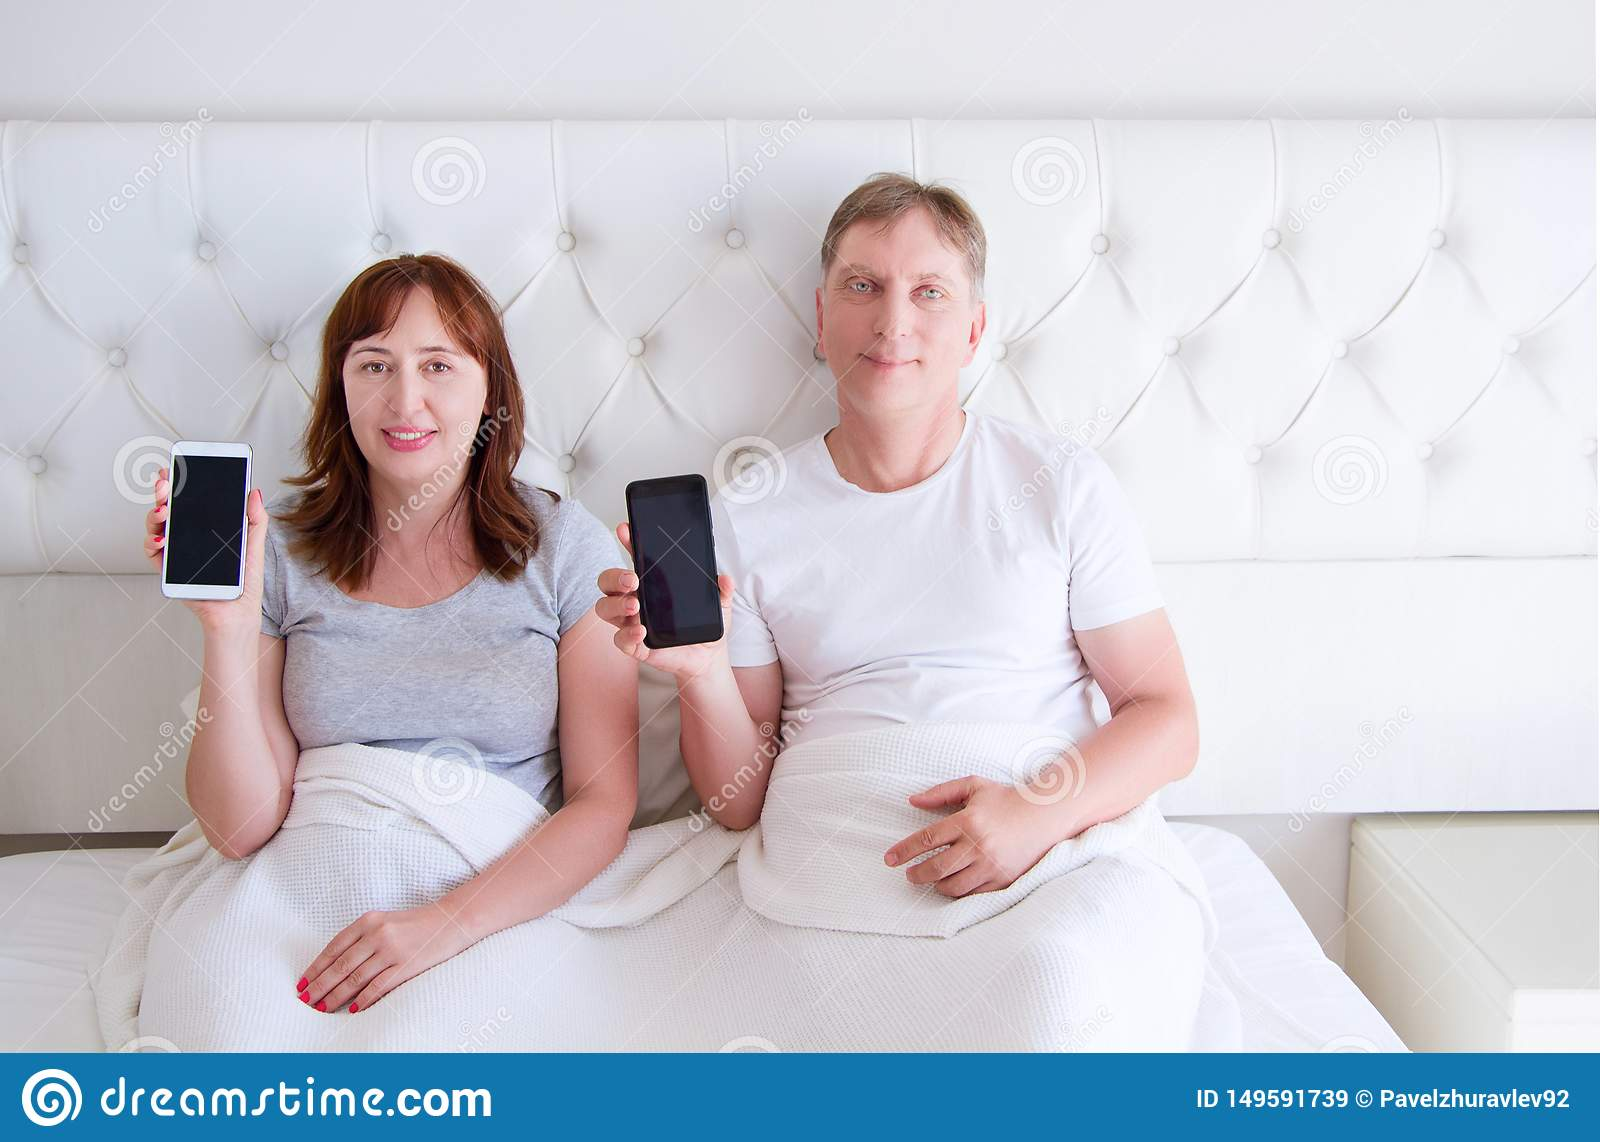 Middle aged couple holding blank screen mobile phone and lying on bed in hotel room bedroom